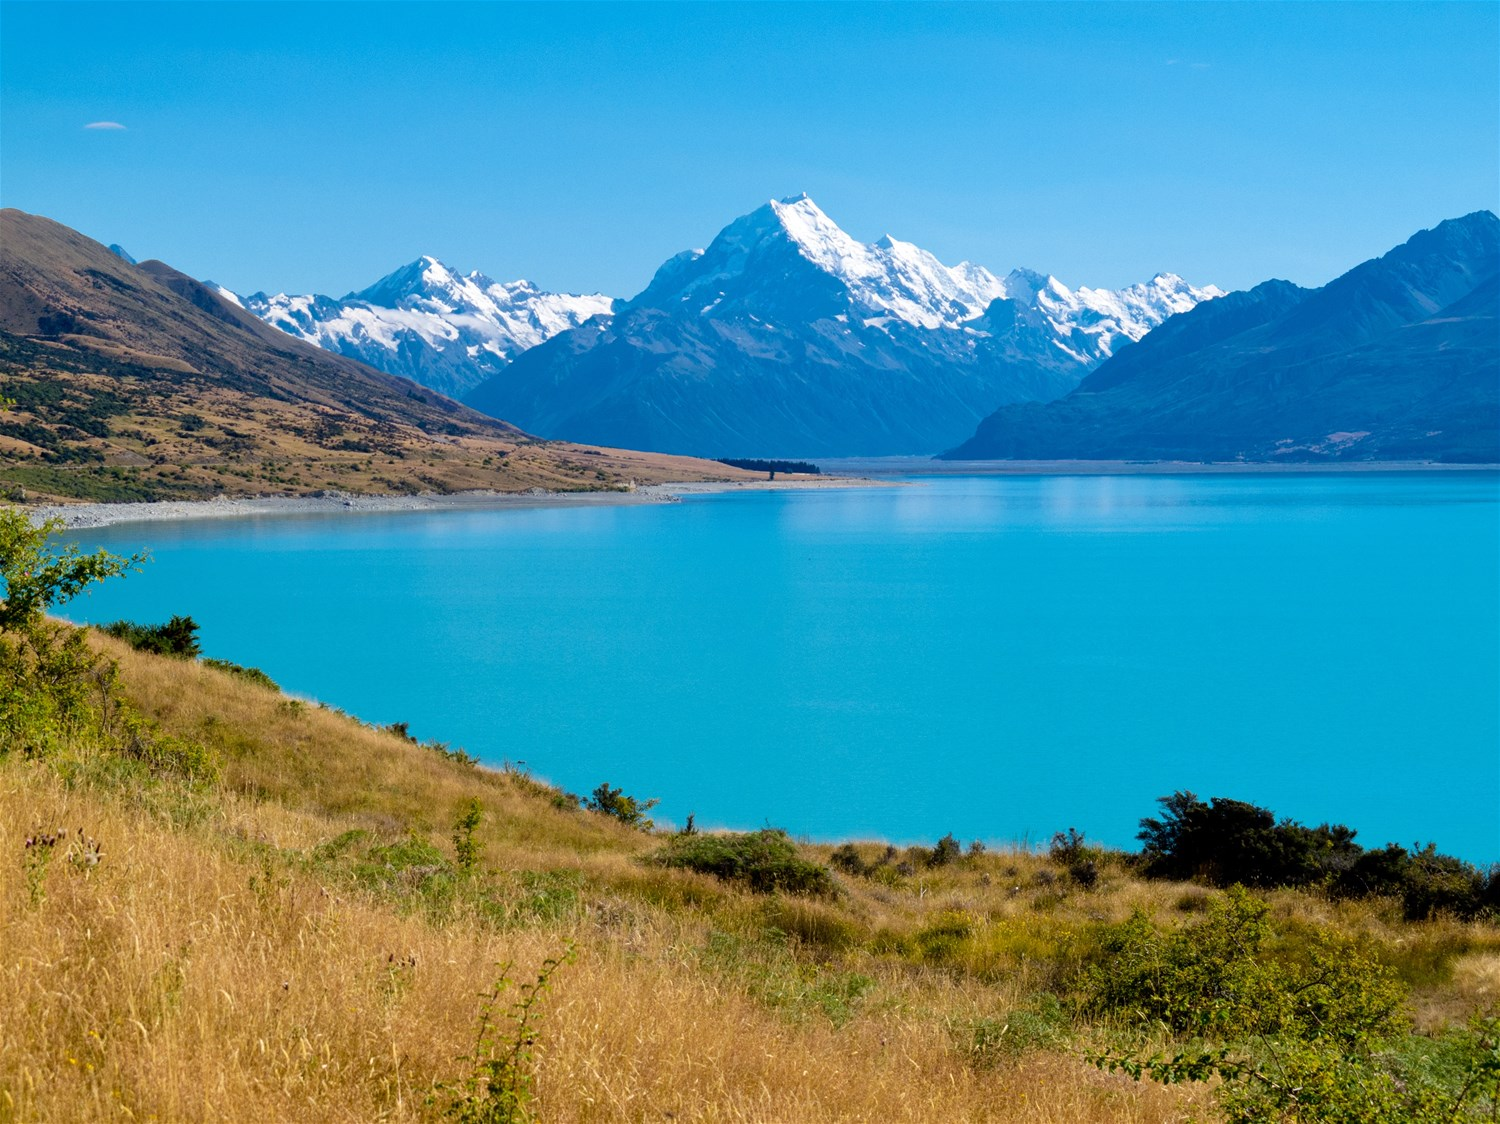 When is the best time to visit New Zealand